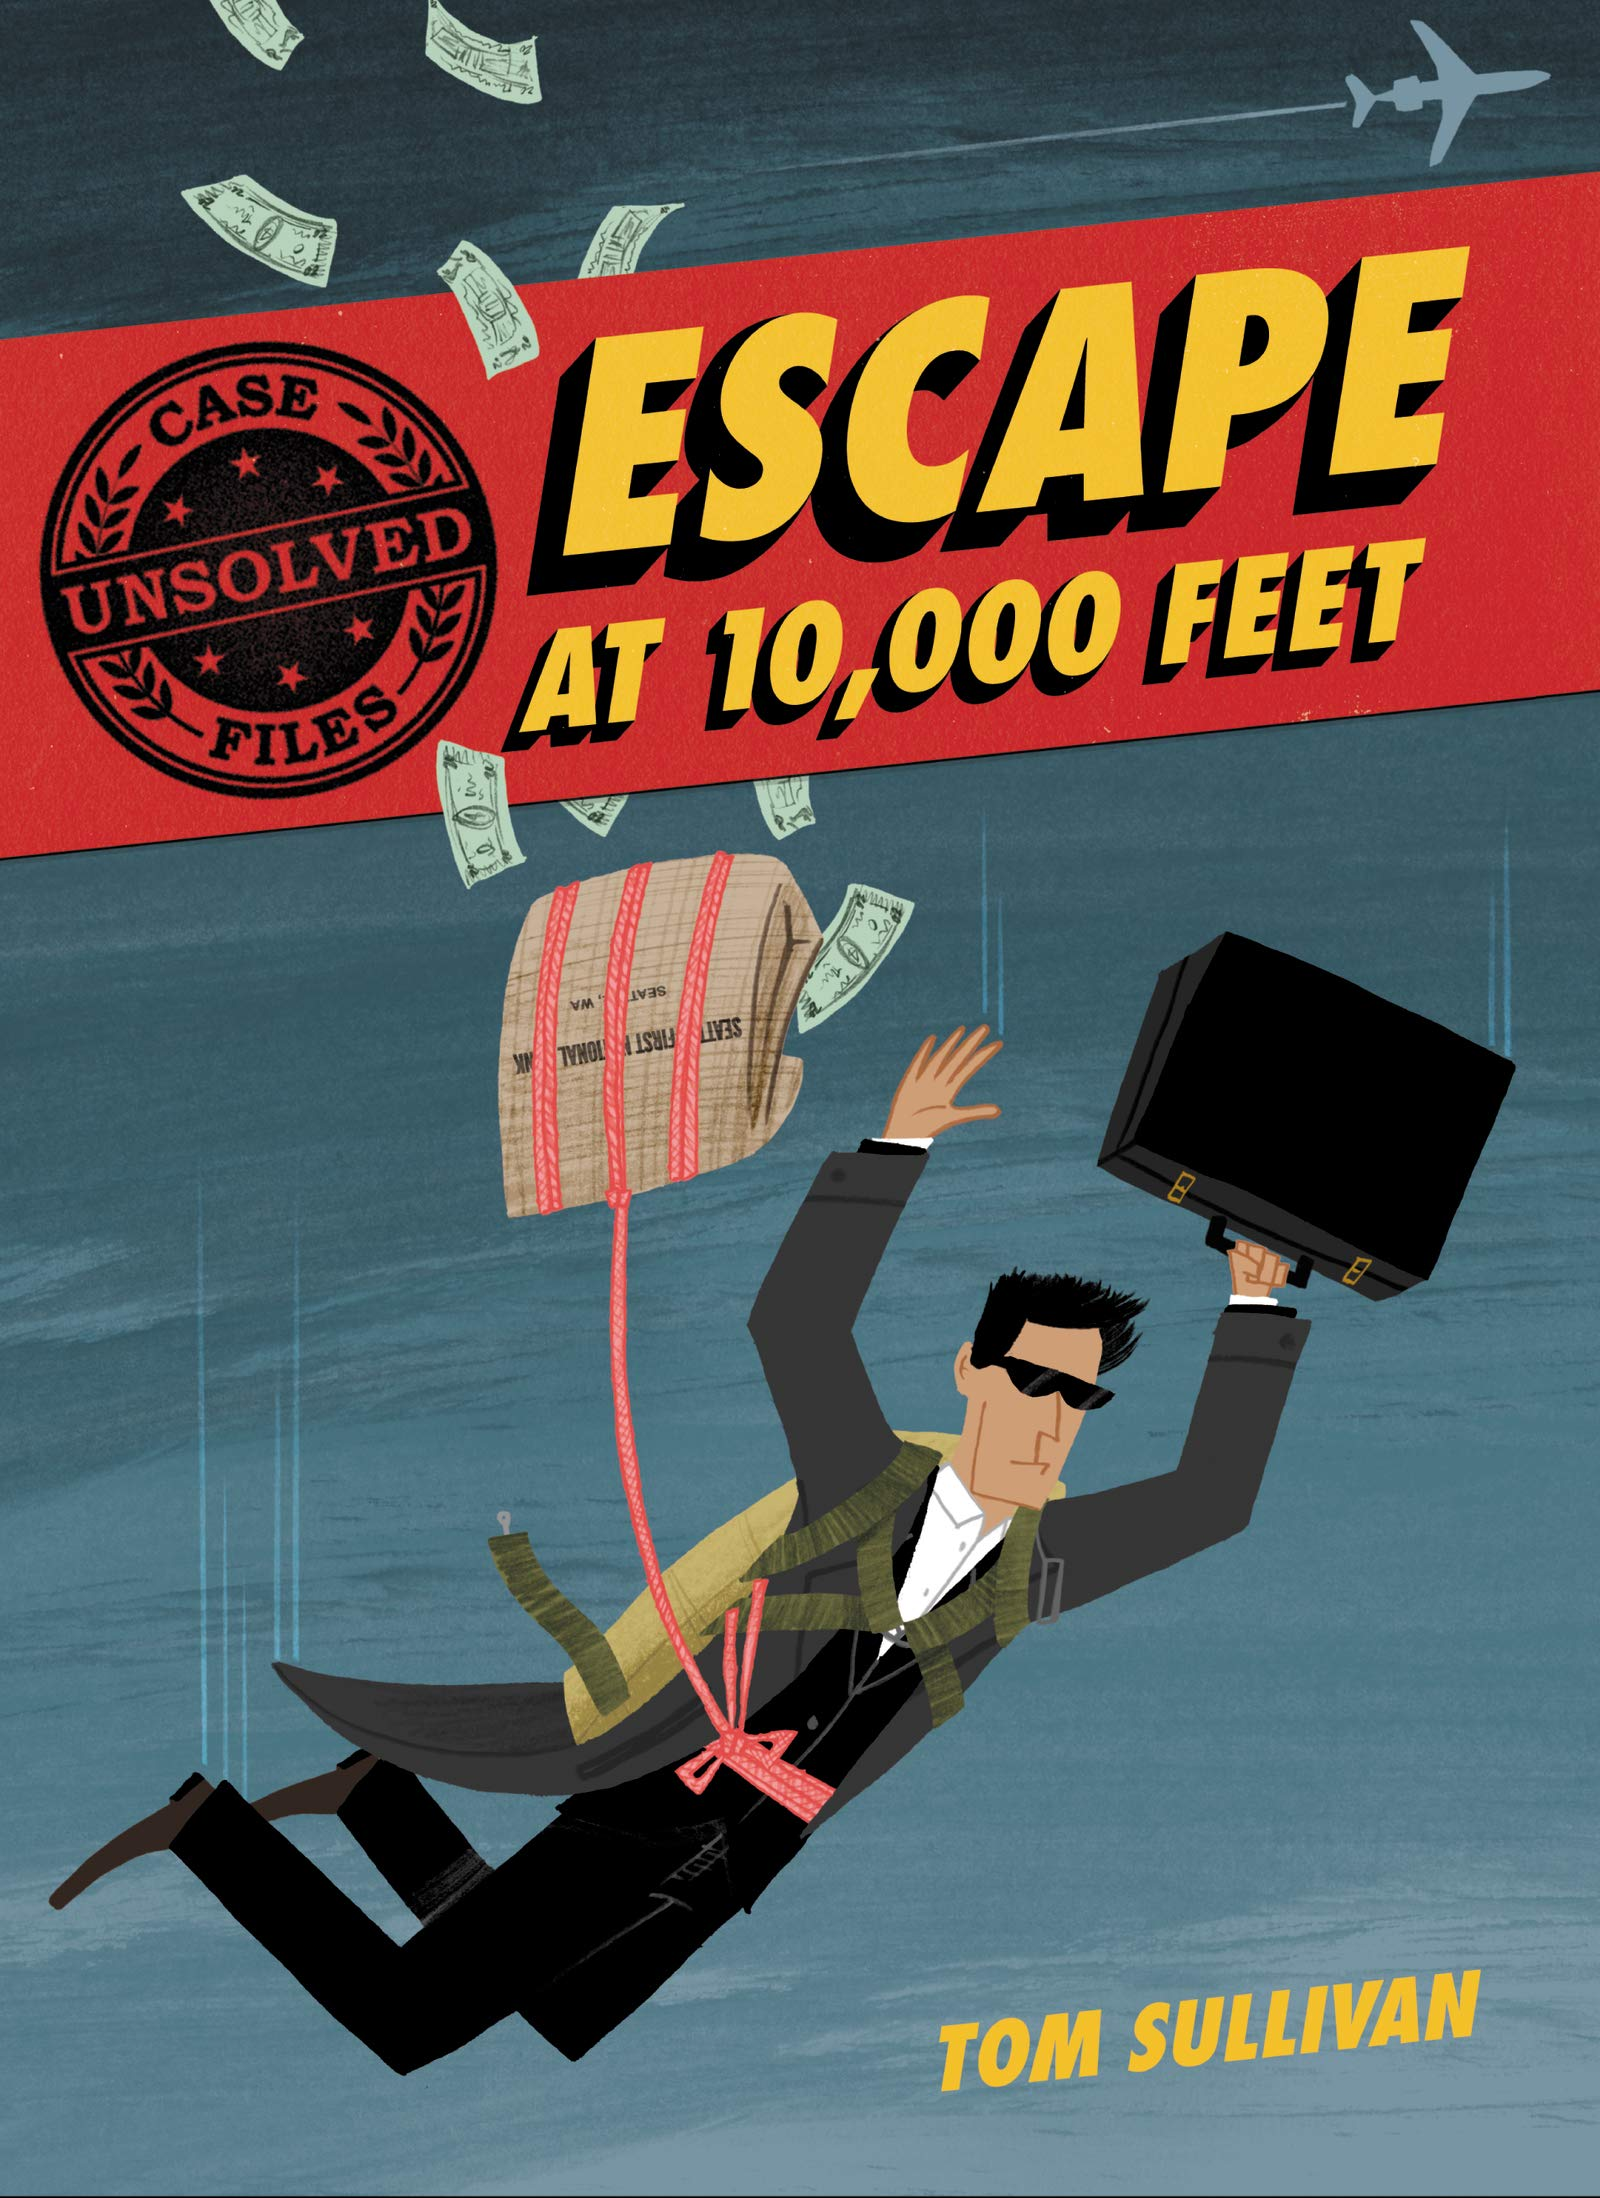 Unsolved Case Files: Escape at 10, 000 Feet: D.B. Cooper and the Missing  Money (Unsolved Case Files, 1): Sullivan, Tom, Sullivan, Tom:  9780062991522: Amazon.com: Books